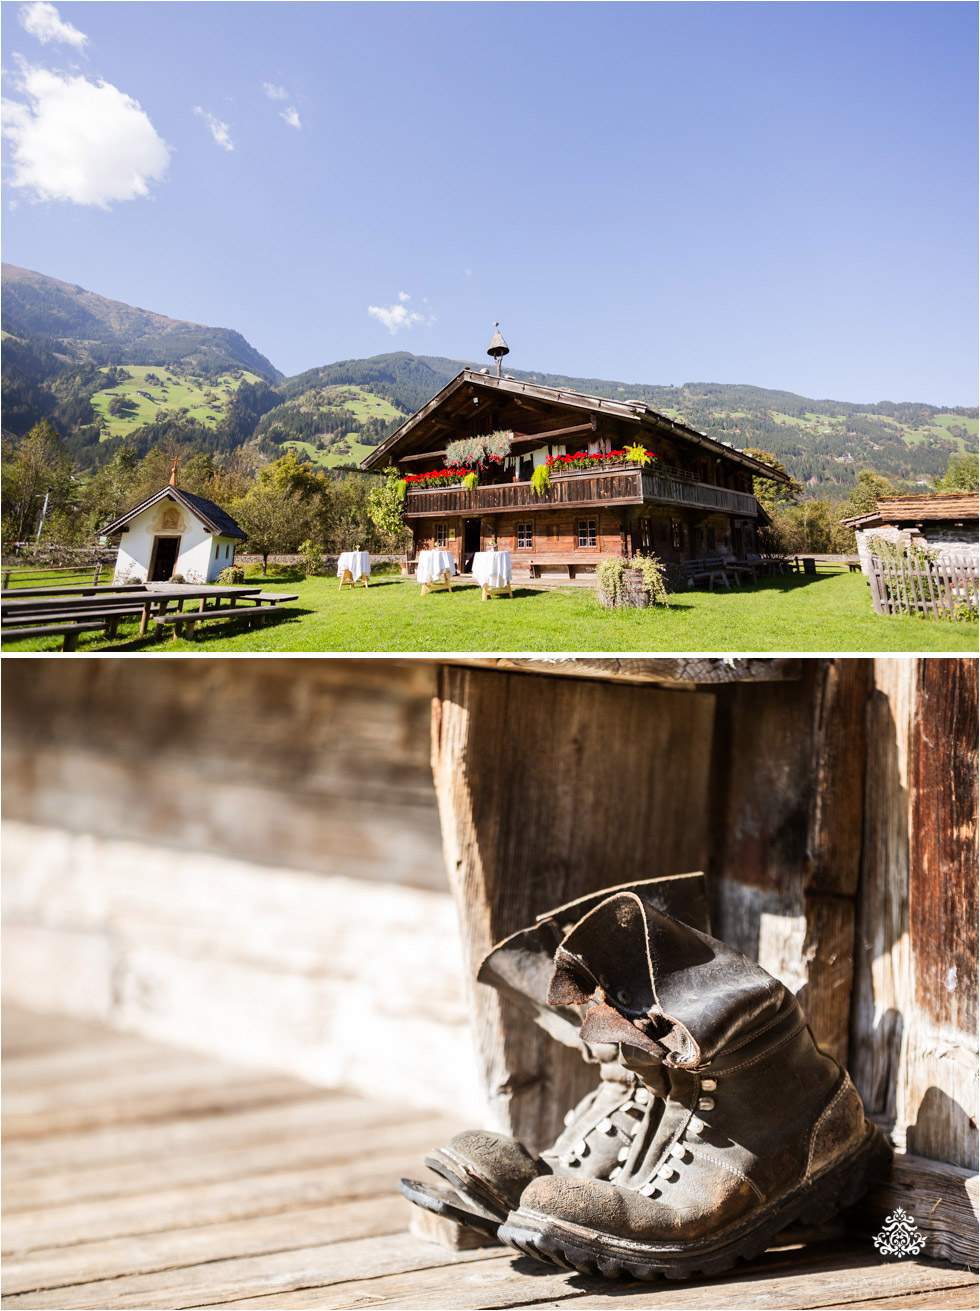 Edelweiss Wedding with Saskia & Martin in the Tyrolean Alps | Zillertal, Tyrol - Blog of Nina Hintringer Photography - Wedding Photography, Wedding Reportage and Destination Weddings